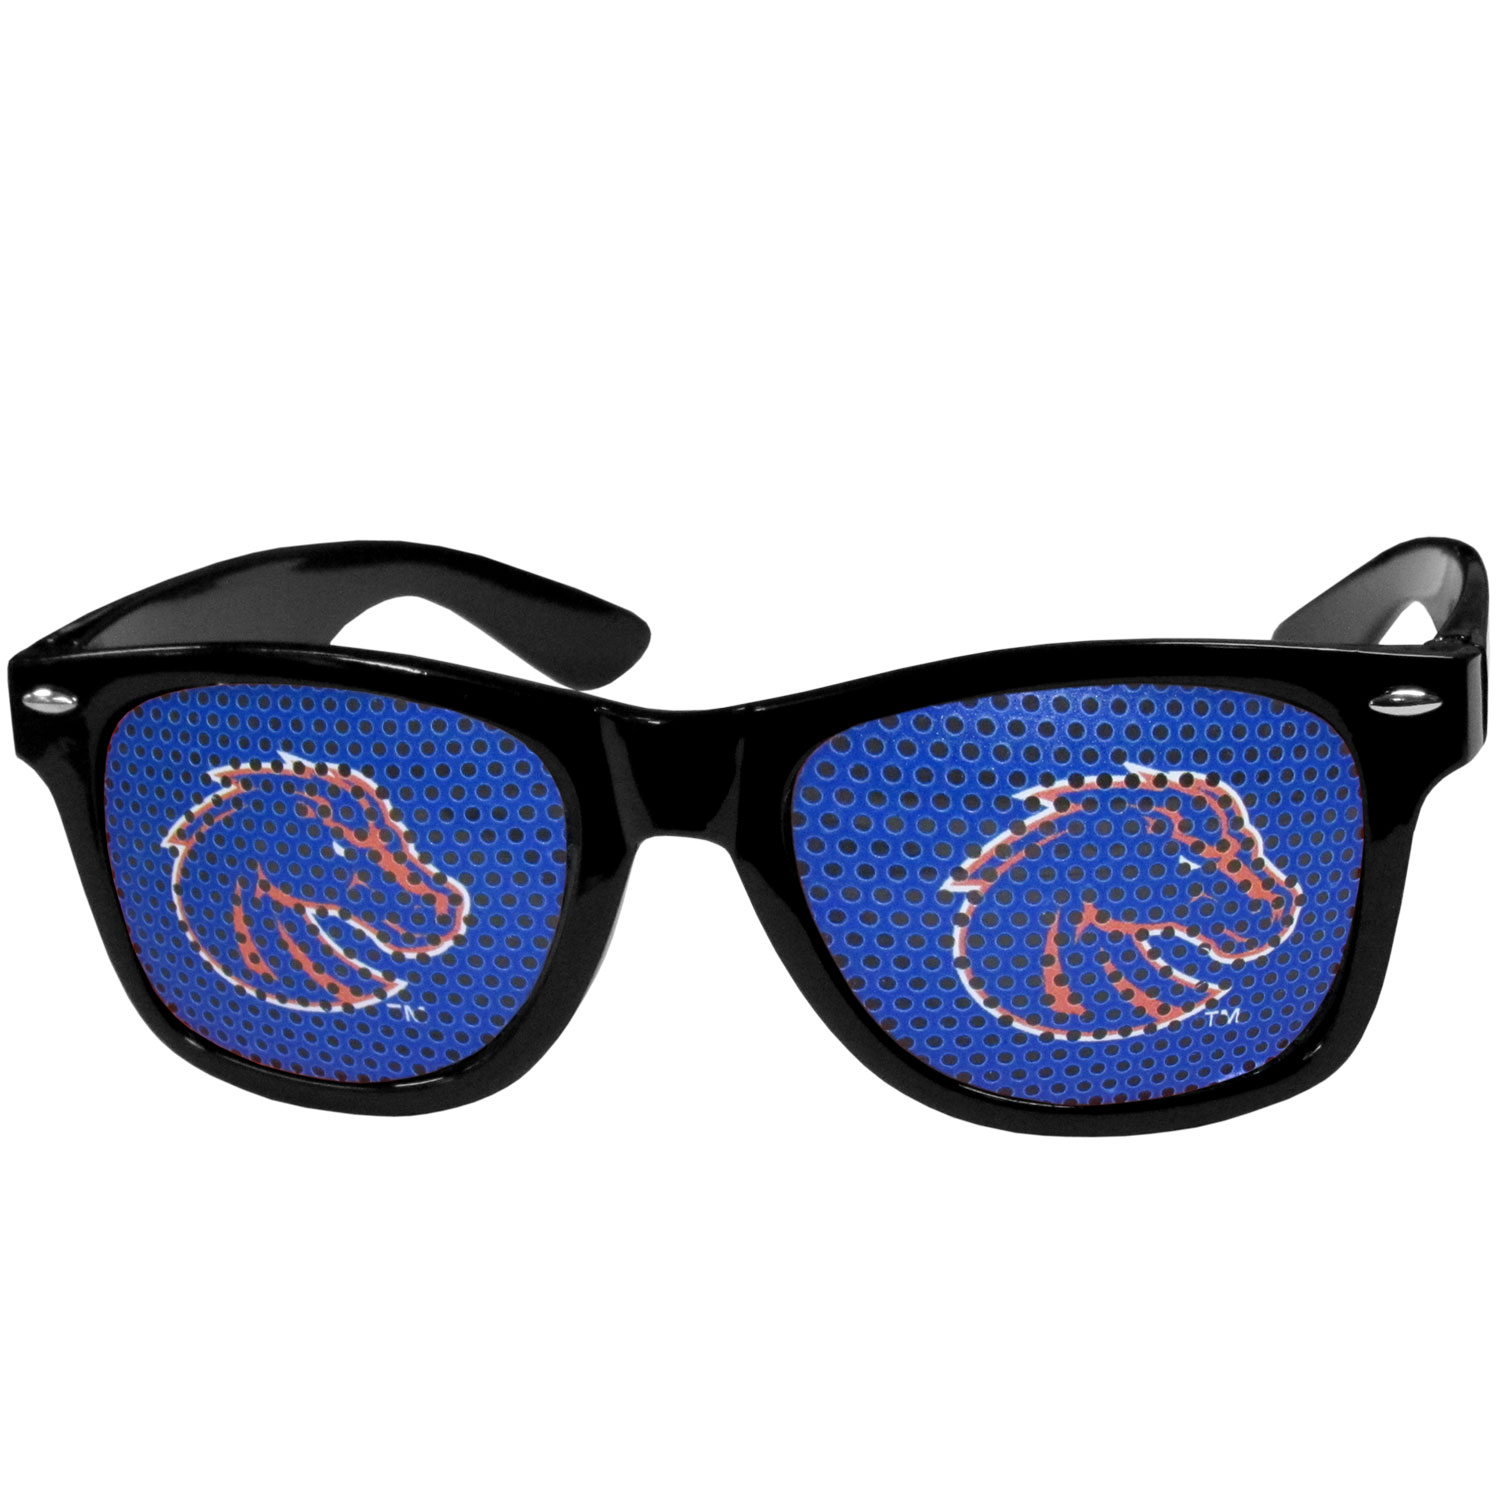 Boise St. Broncos Game Day Shades - Our officially licensed game day shades are the perfect accessory for the devoted Boise St. Broncos fan! The sunglasses have durable polycarbonate frames with flex hinges for comfort and damage resistance. The lenses feature brightly colored team clings that are perforated for visibility.